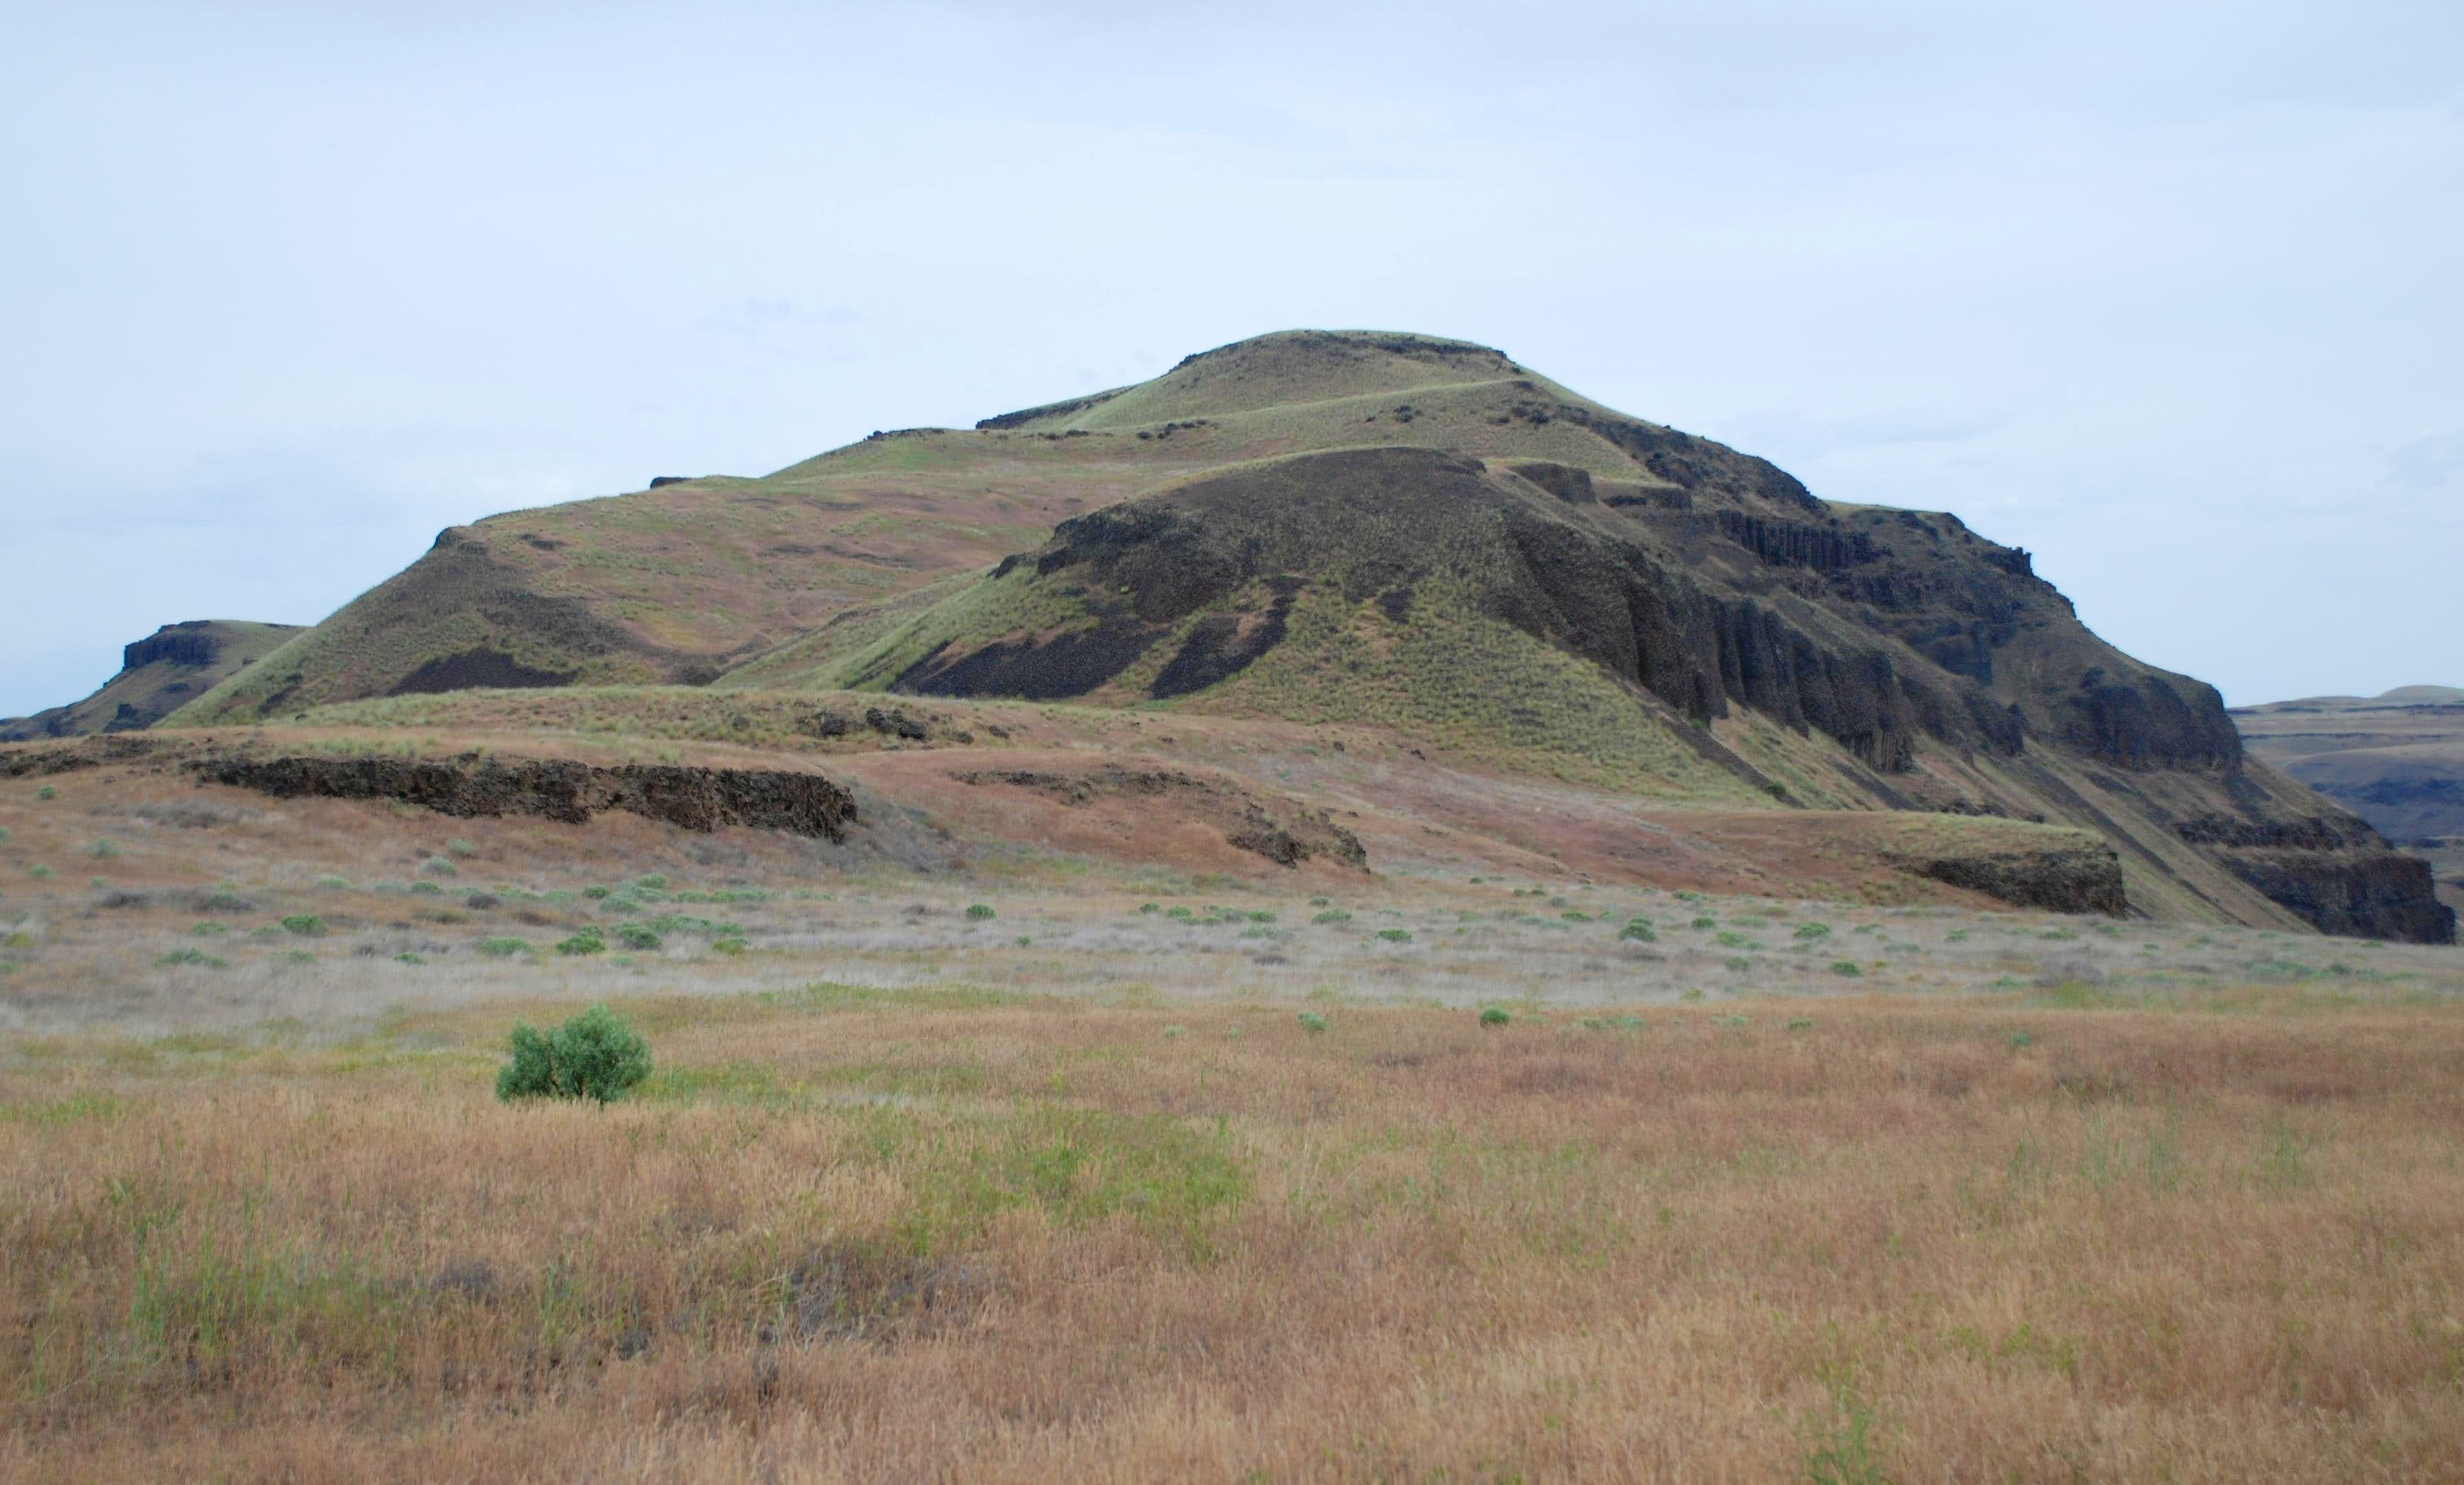 Eastern Washington Obscurity